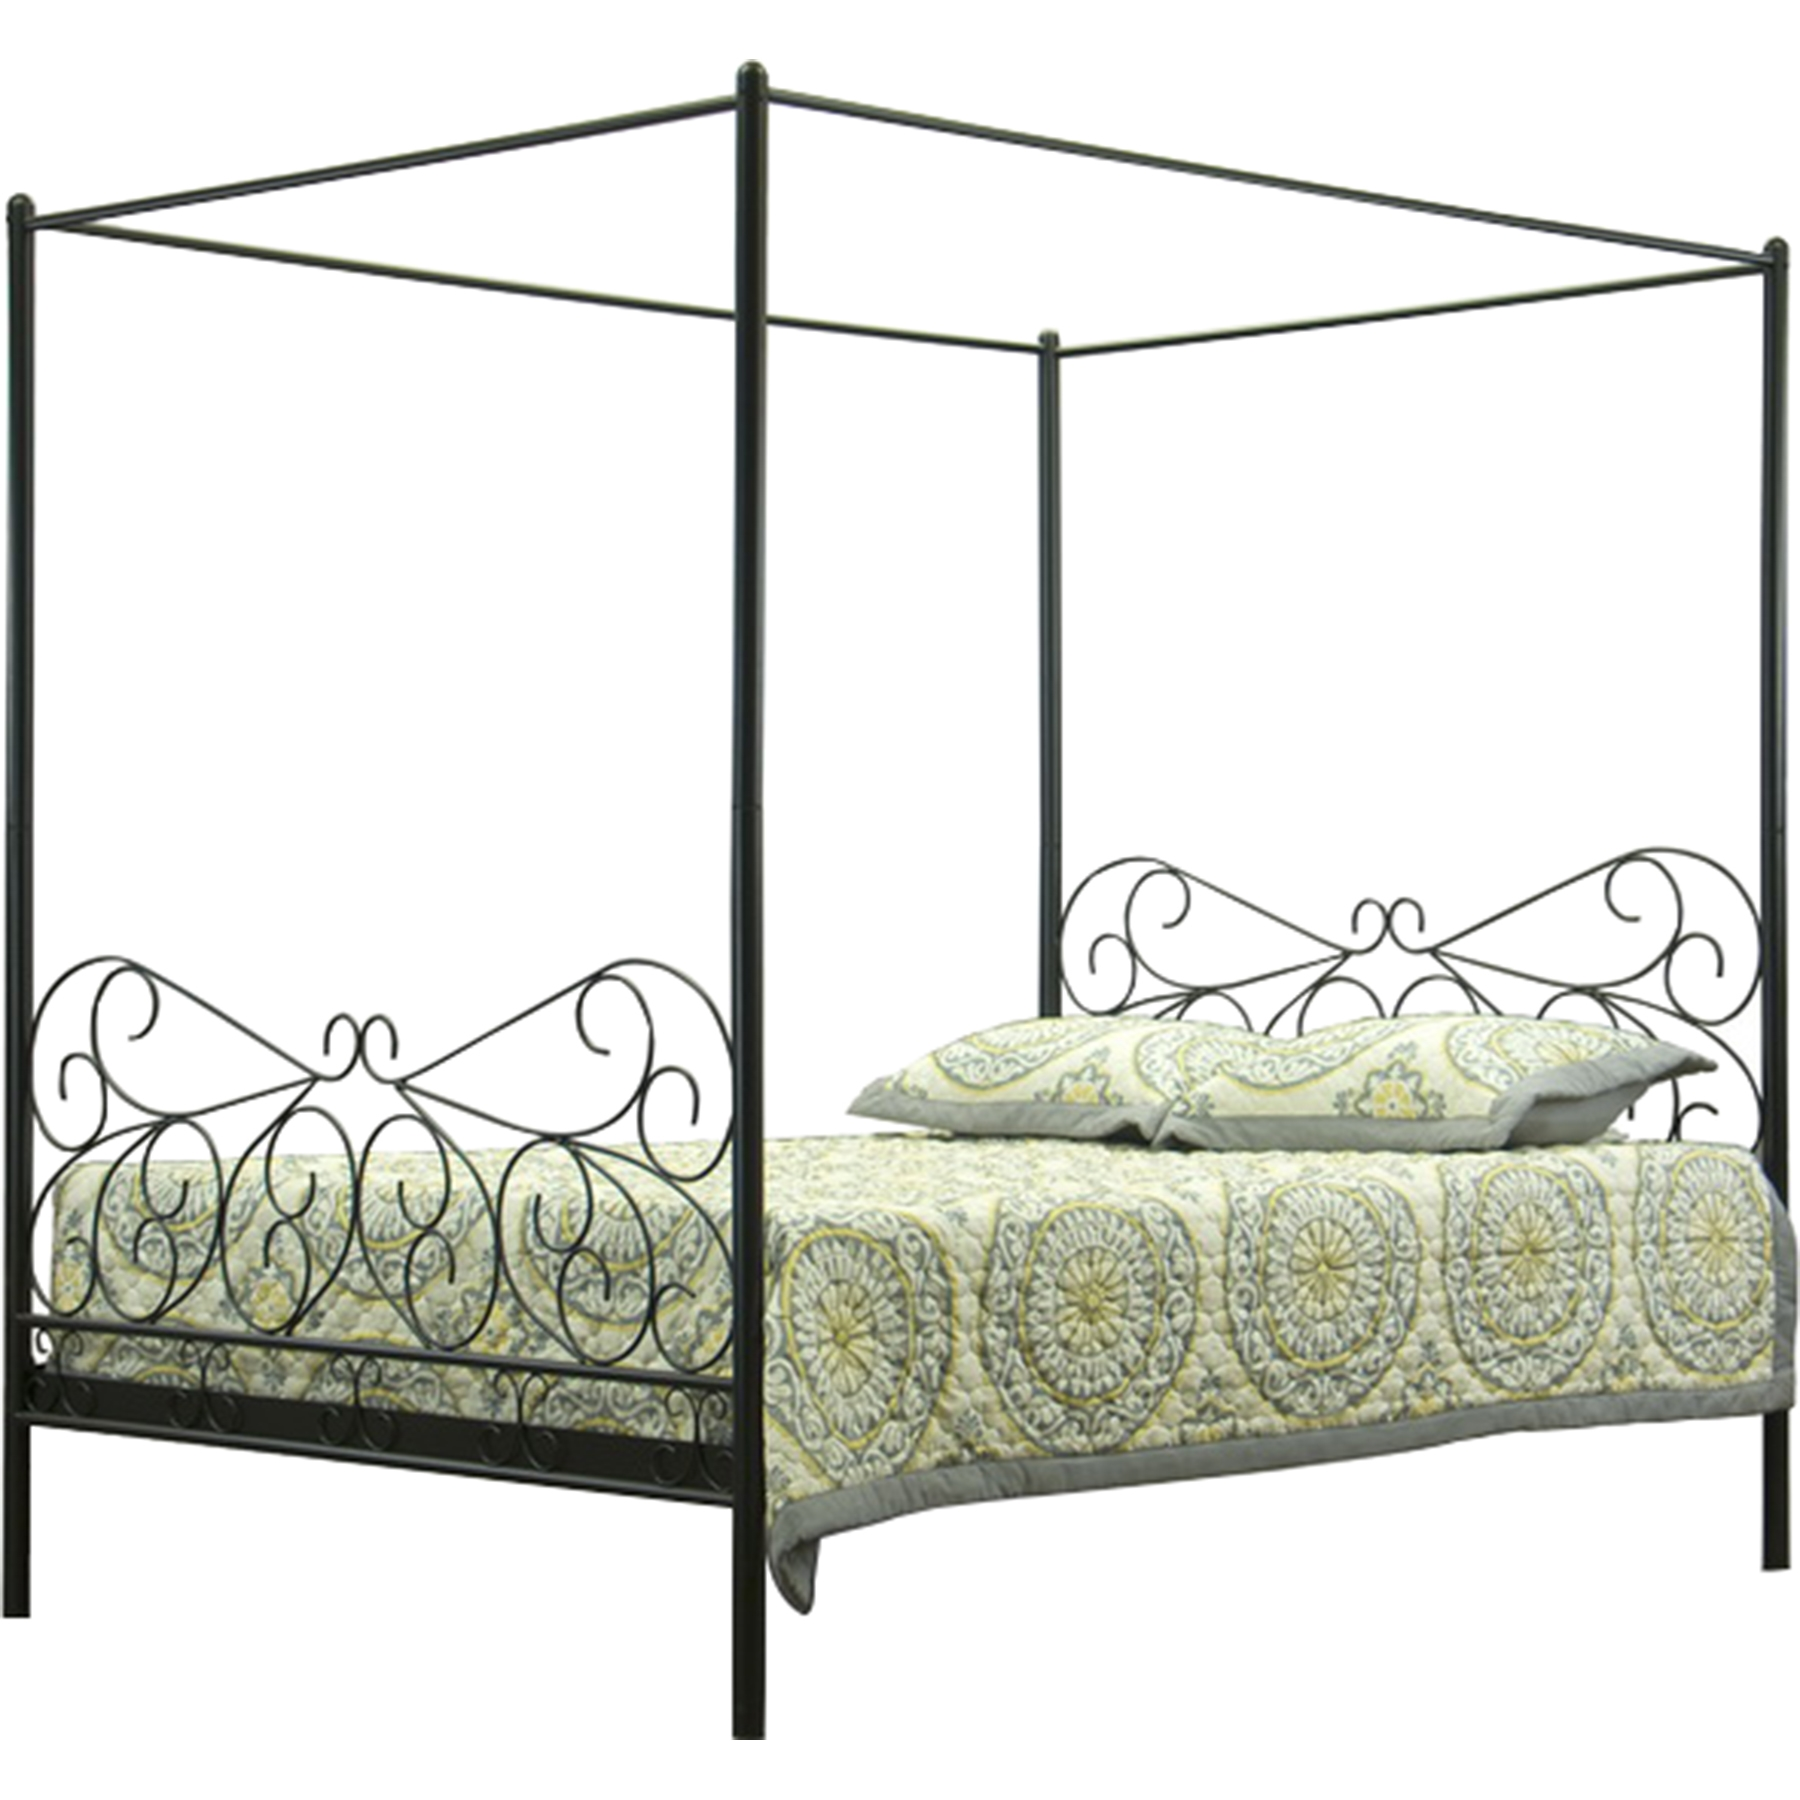 Antiquity Metal Queen Canopy Bed - Black  sc 1 st  DCG Stores & Antiquity Metal Queen Canopy Bed - Black | DCG Stores